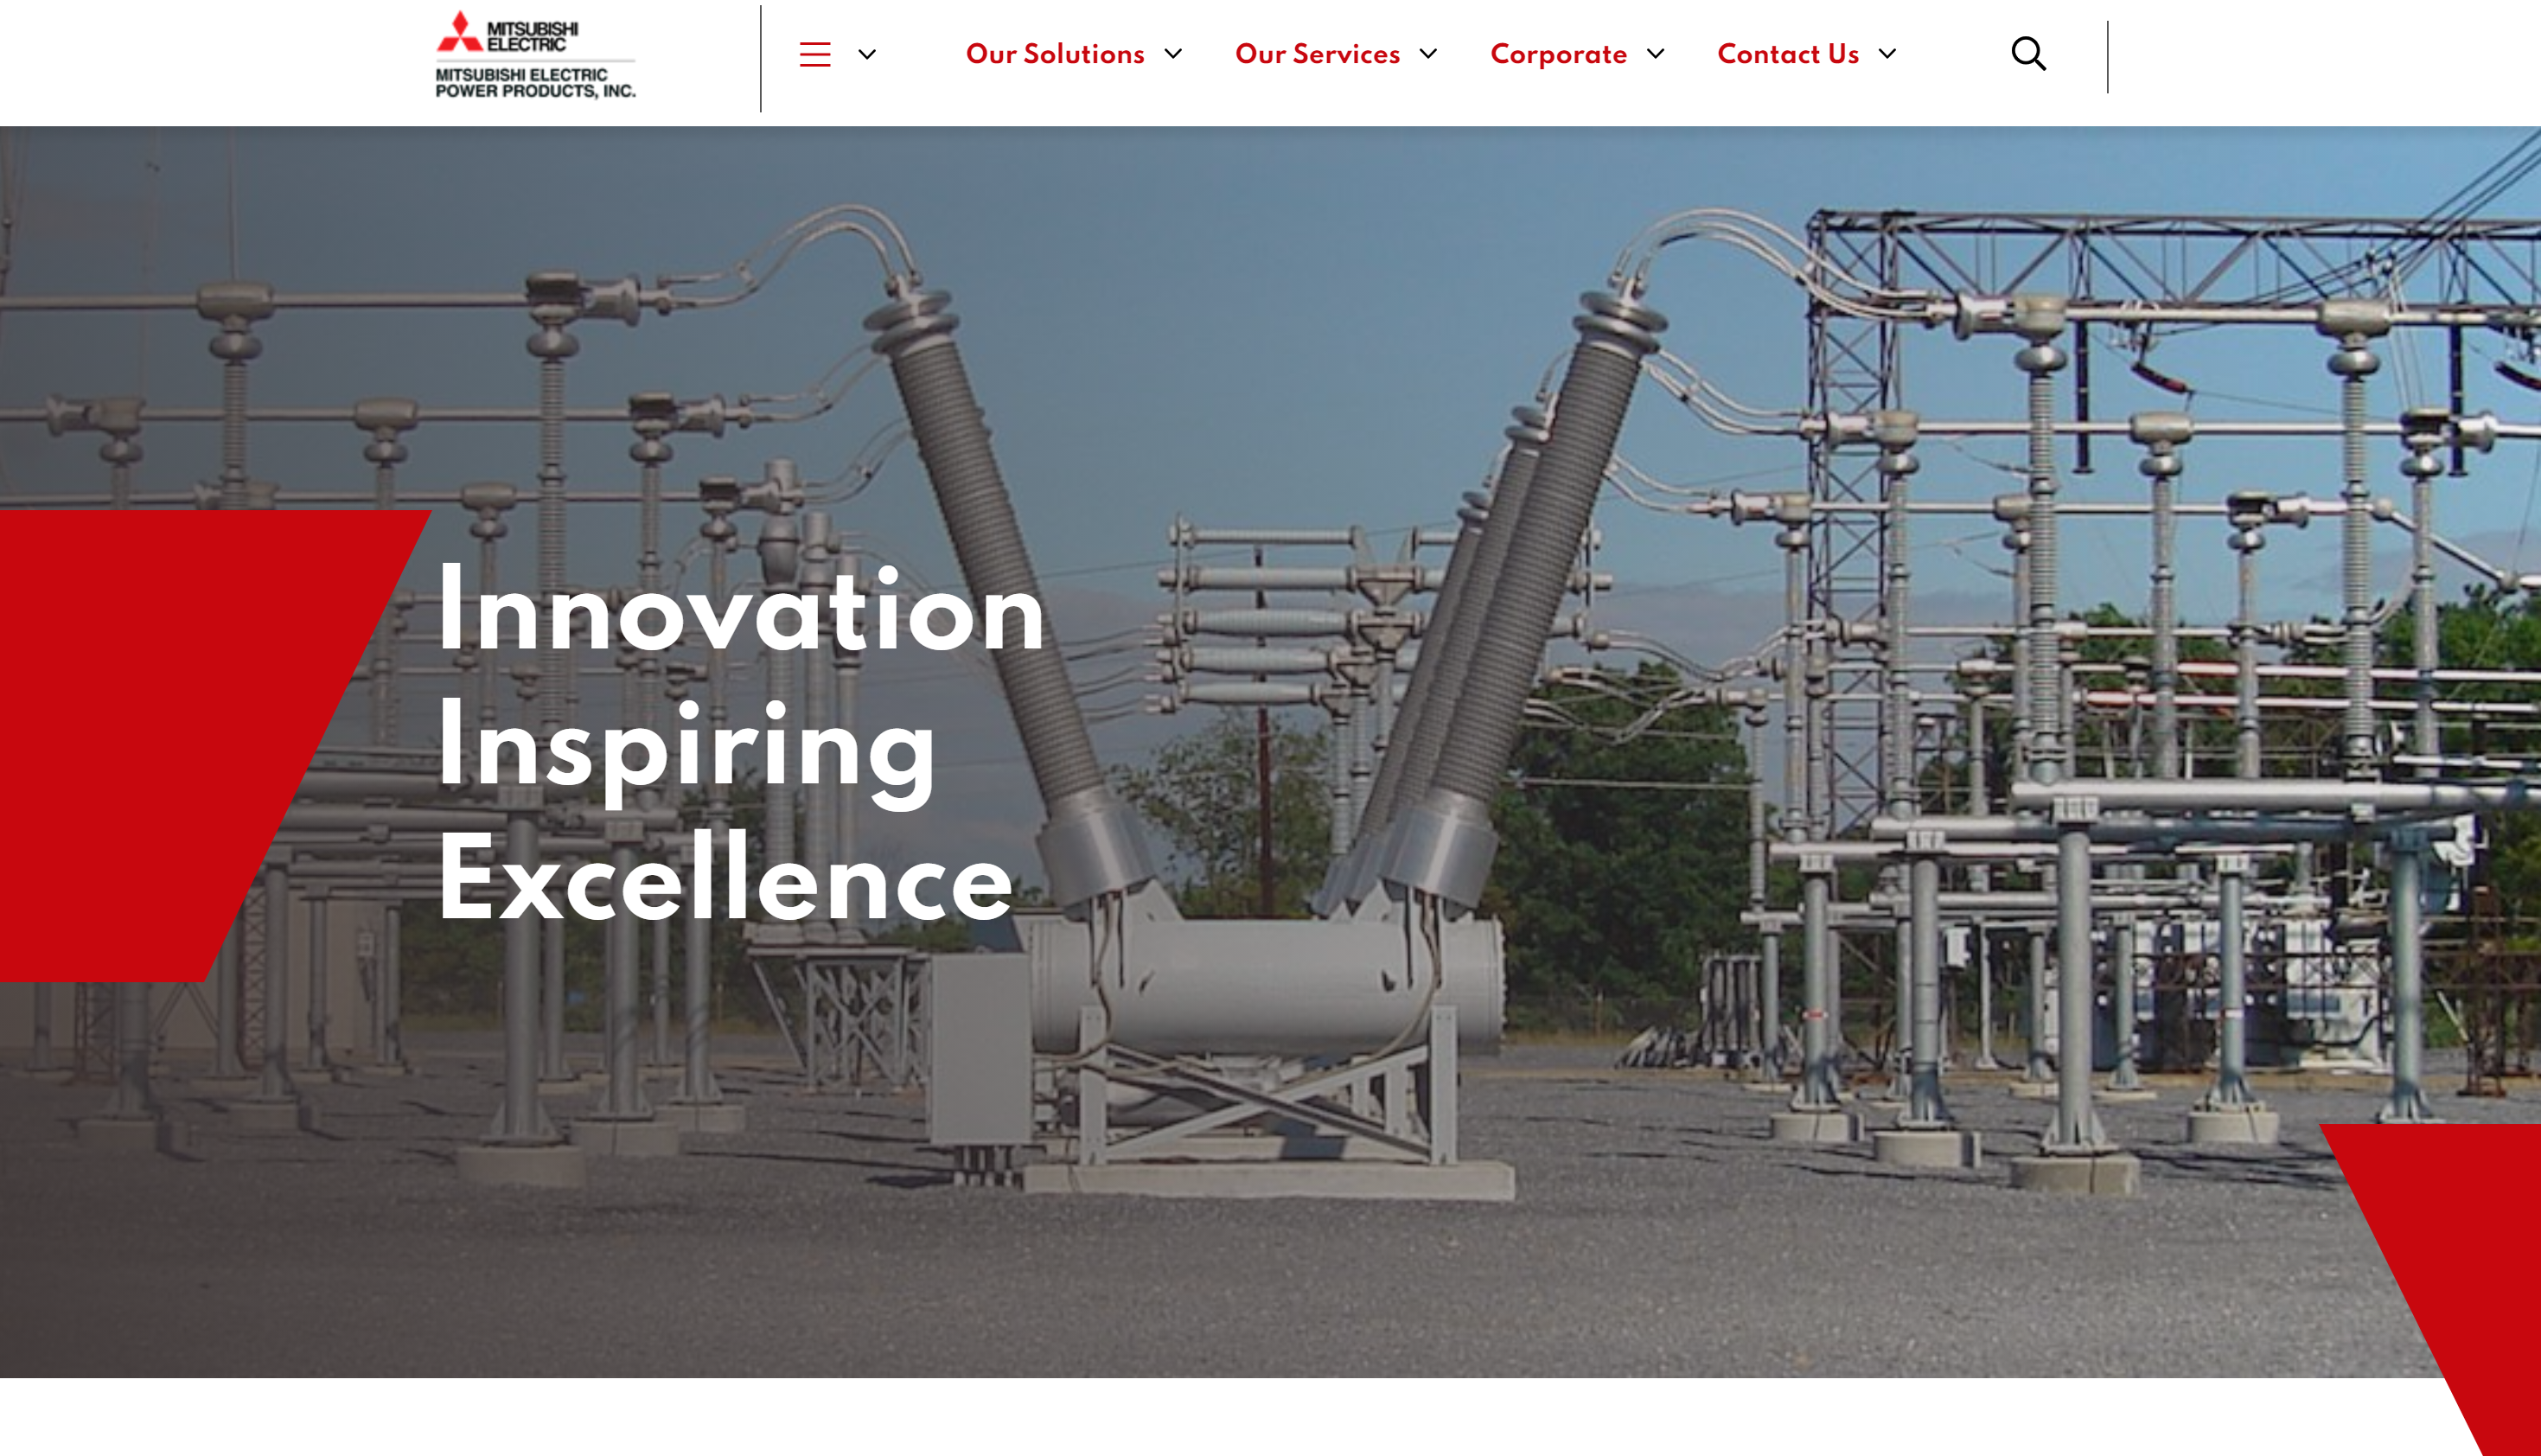 Mitsubishi Electric: Driving Innovation with Digital Transformation powered by Agility CMS